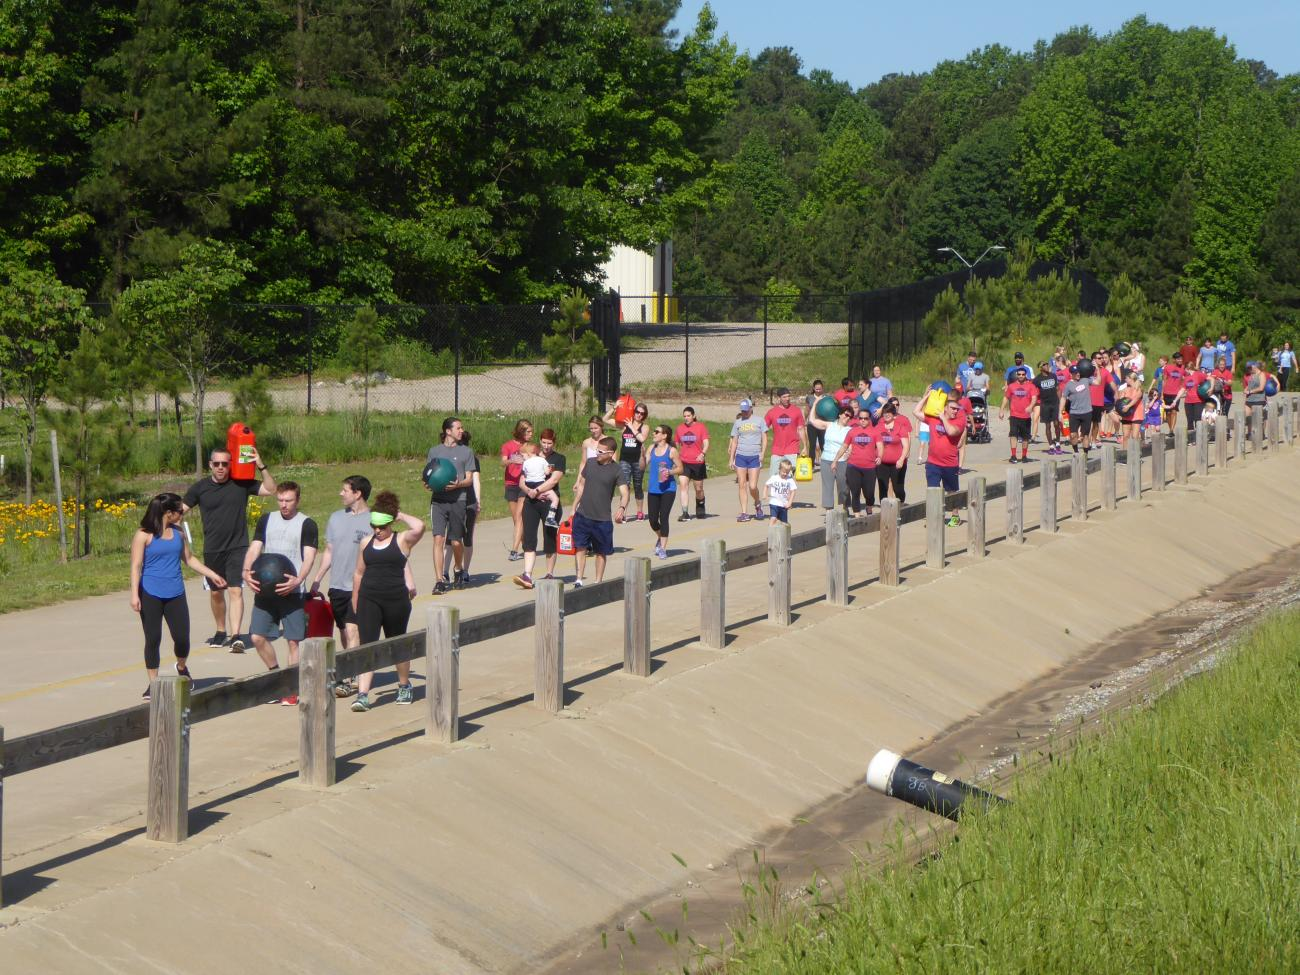 Event at Green Hills featuring a large group of people carrying items along the concrete road.